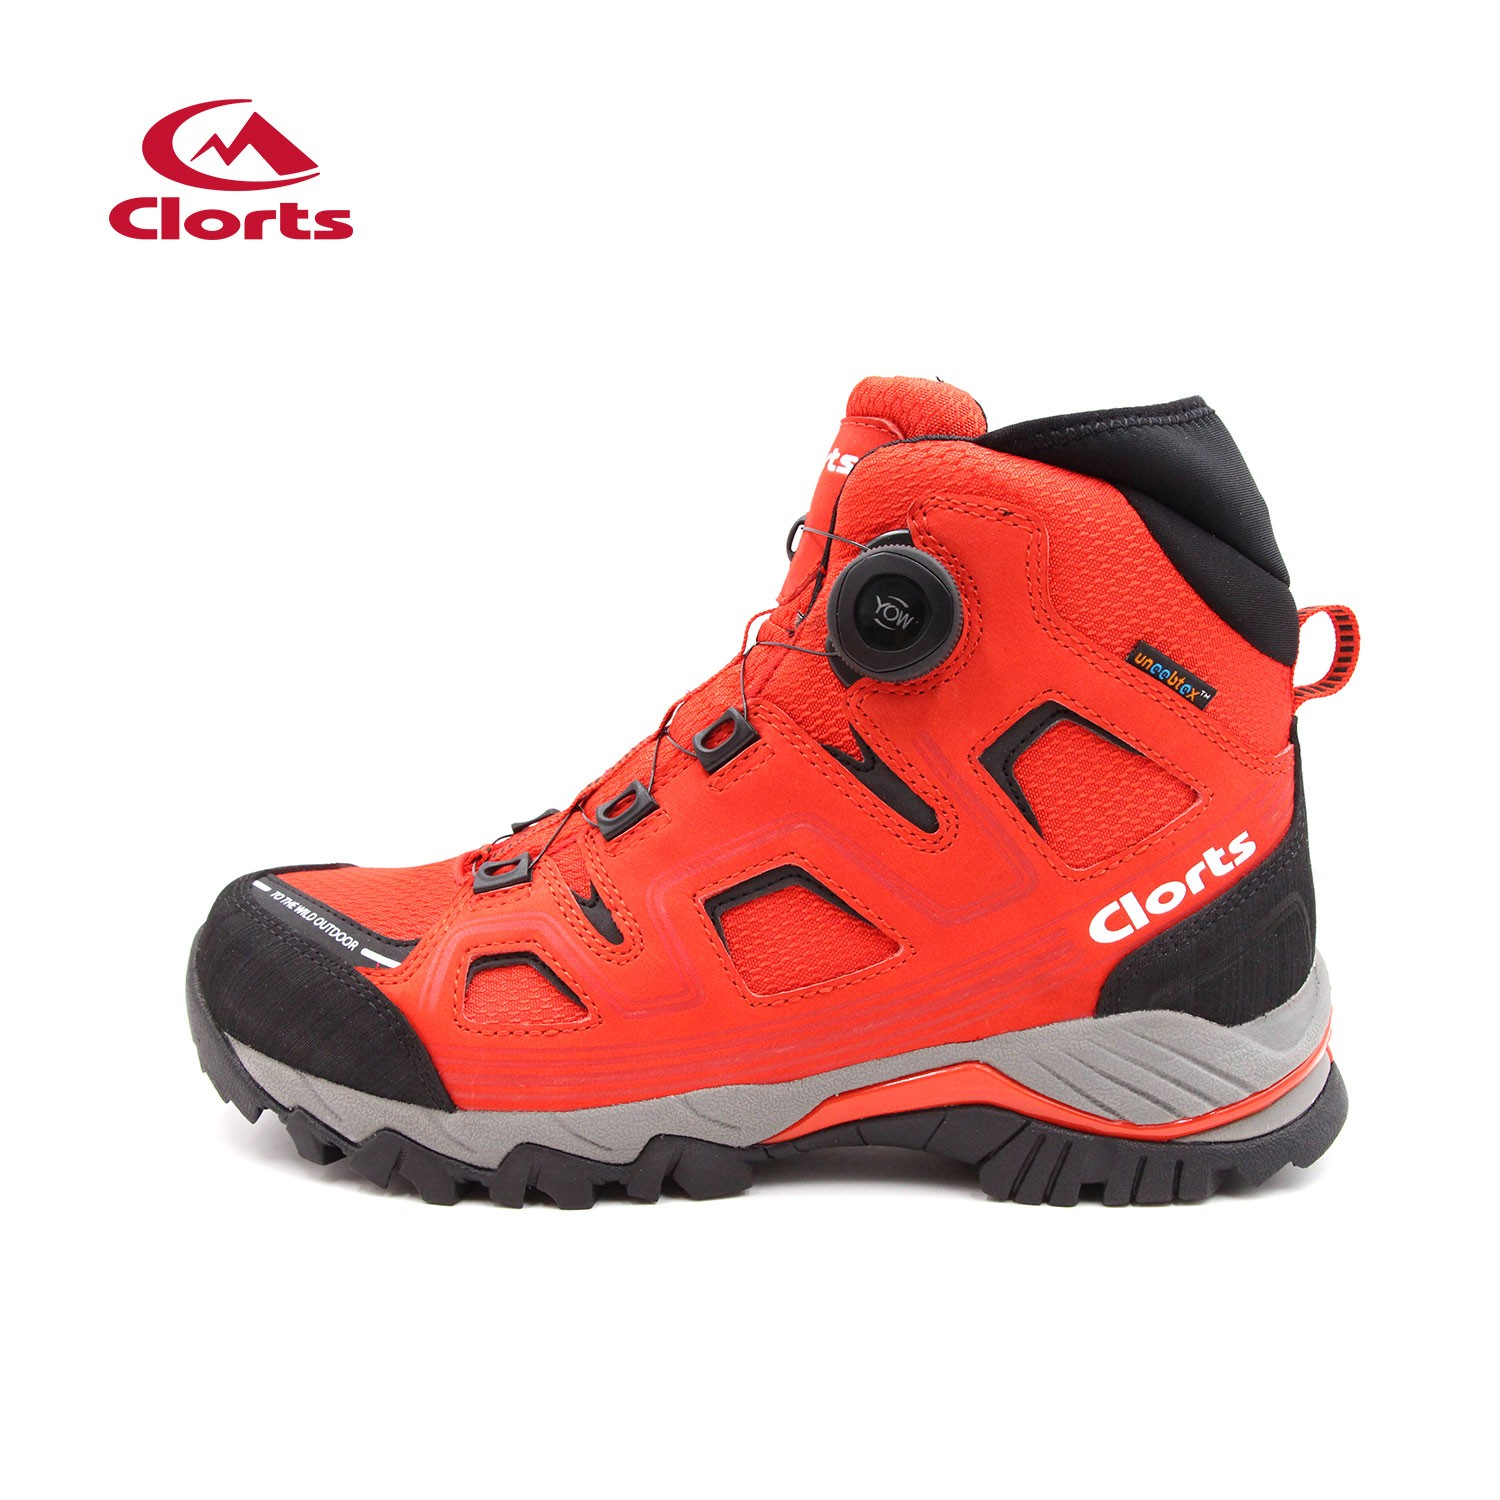 Clorts Mens Mid Waterproof Hiking Boots Red